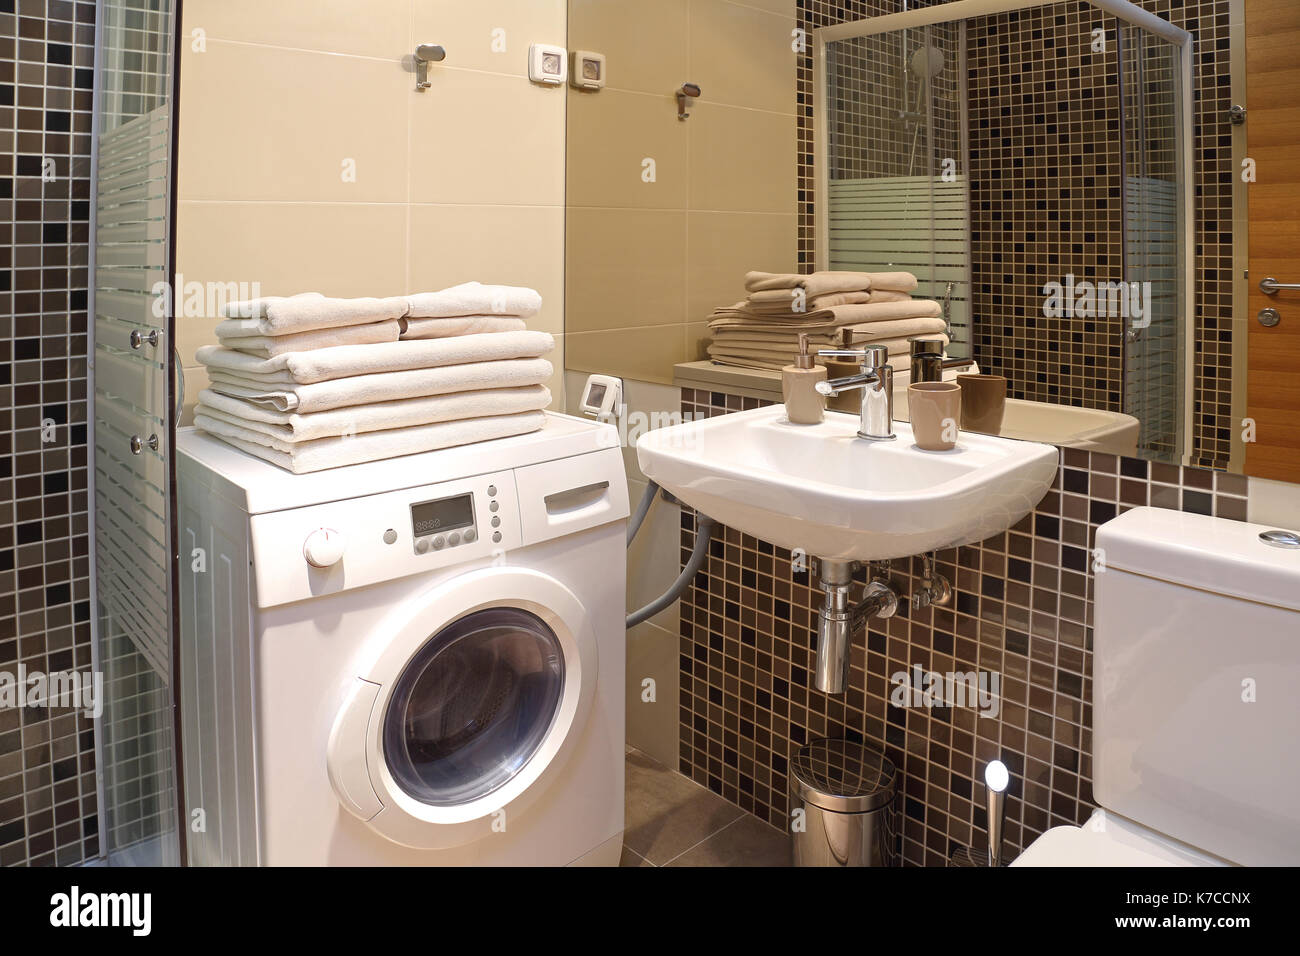 Modern Small Bathroom Modern Small Bathroom With Washing Machine Stock Photo 159469350